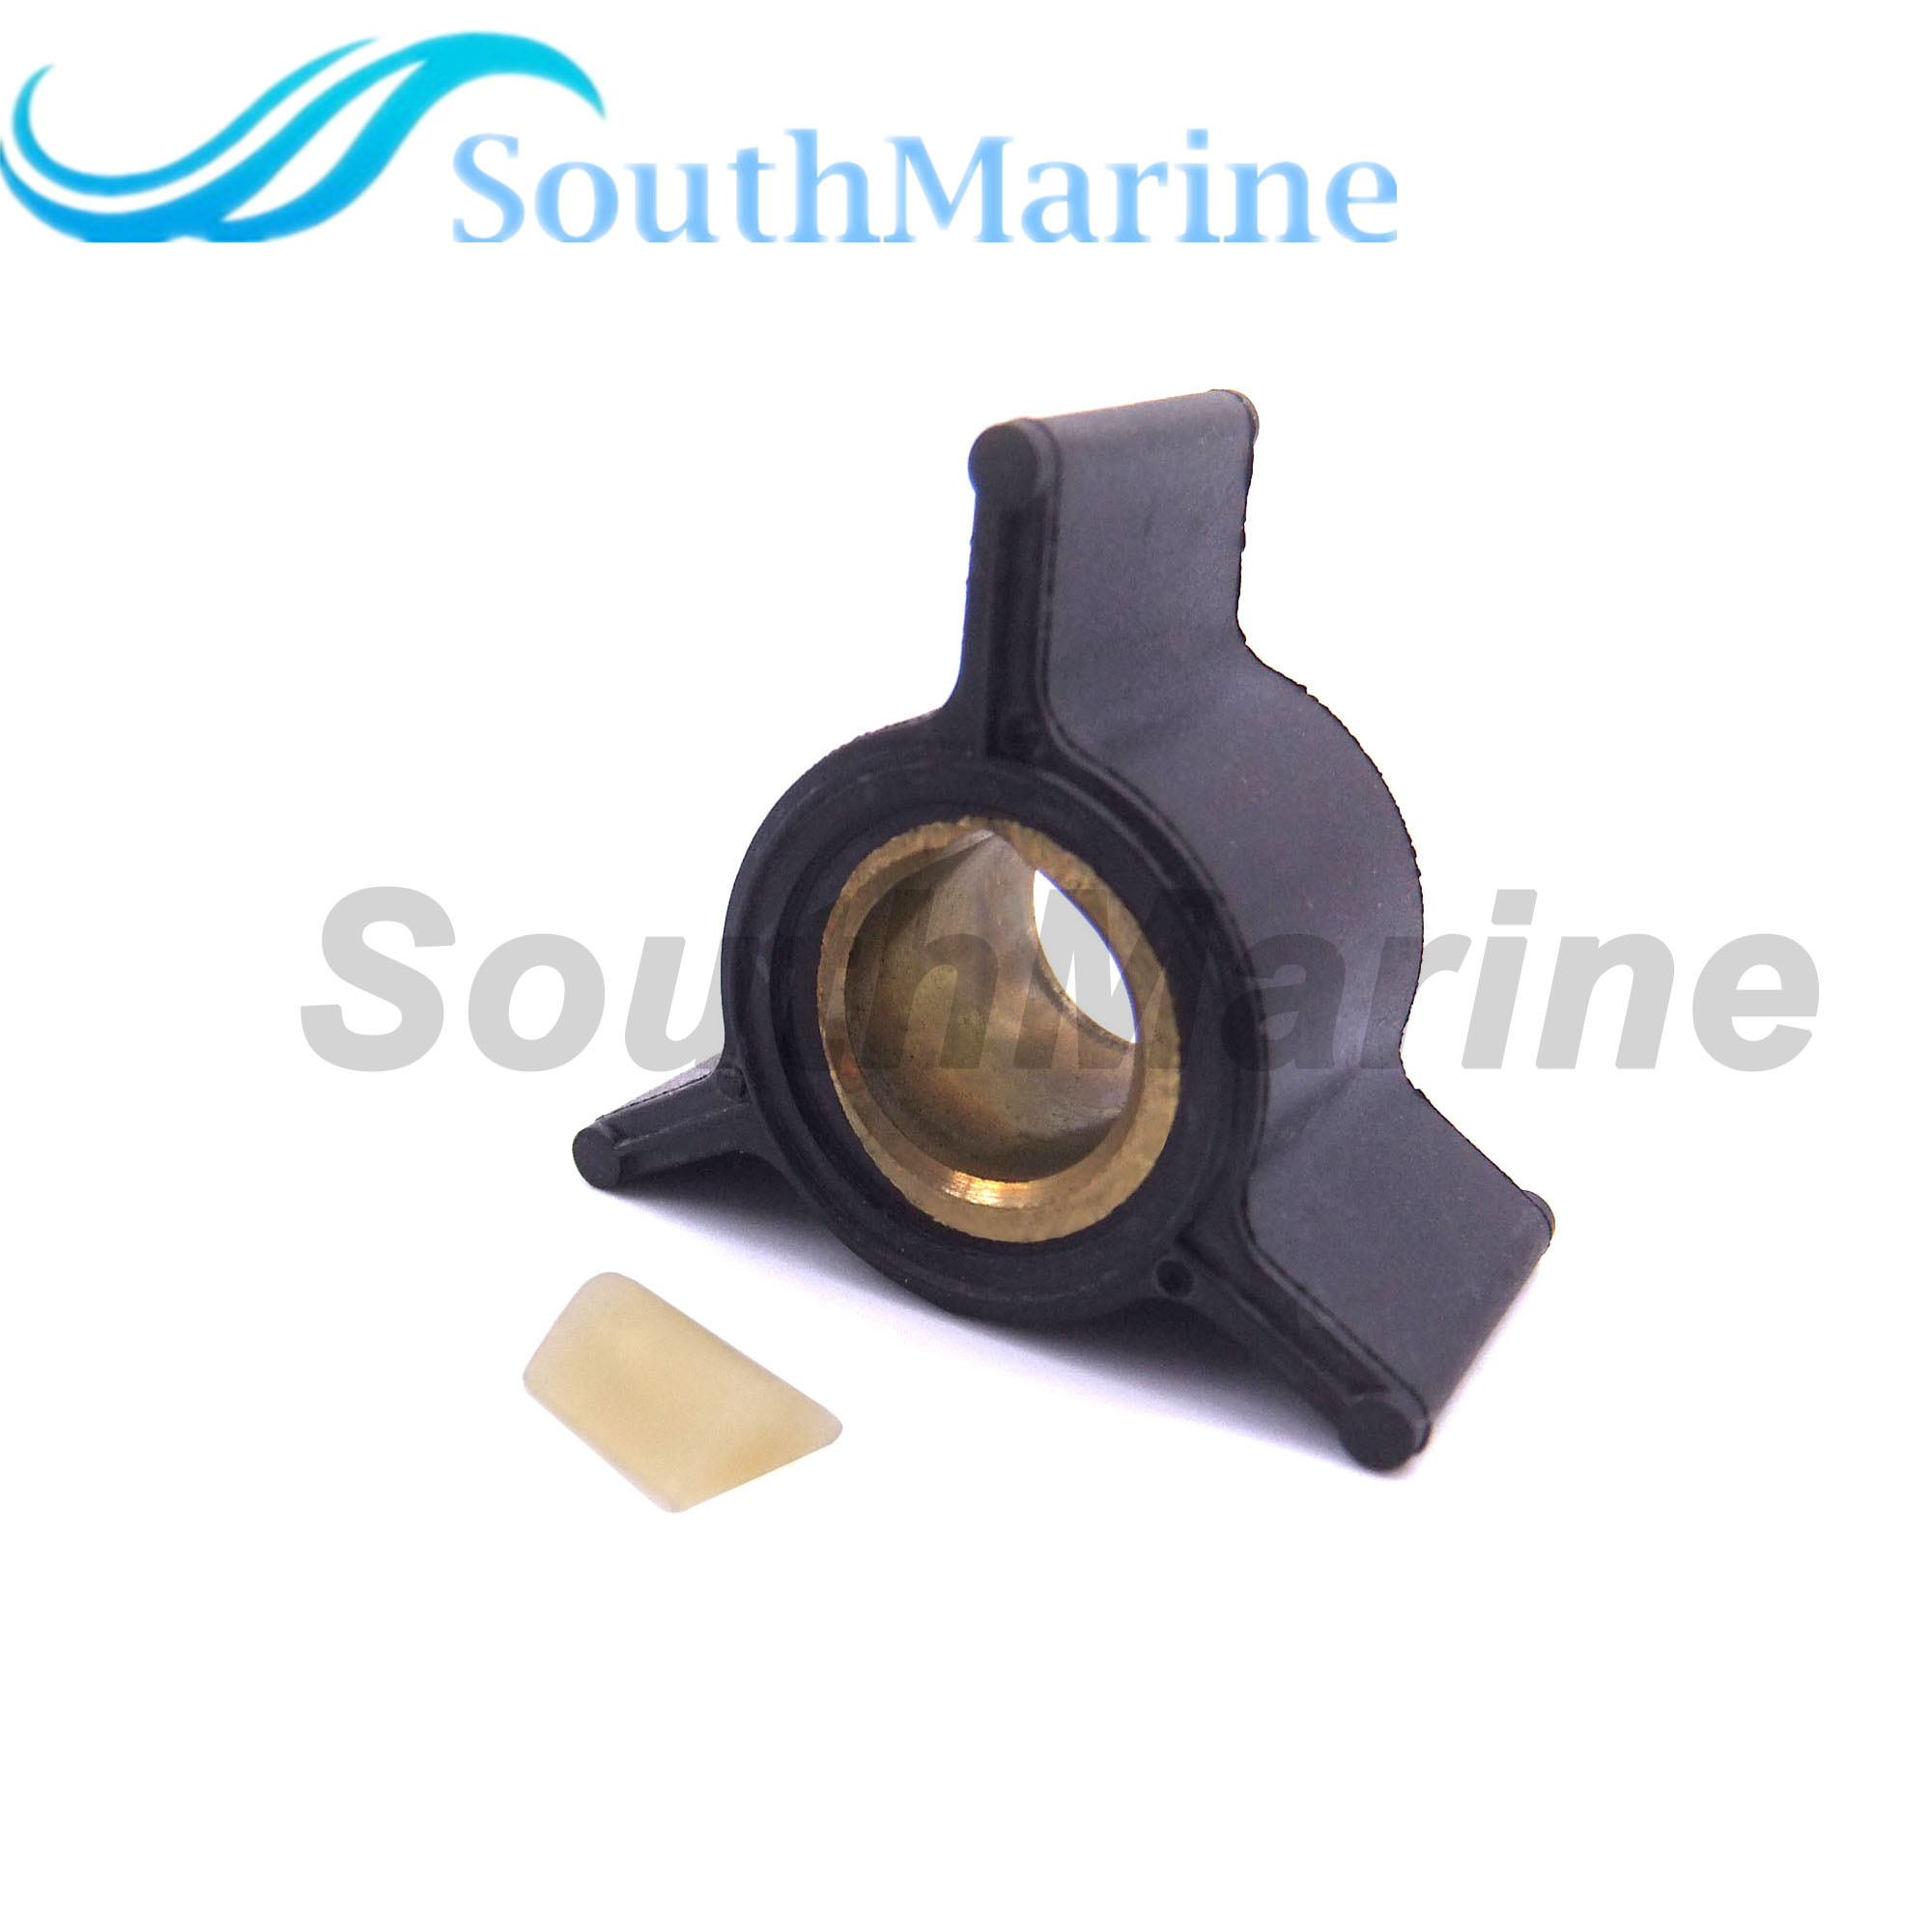 Automobiles & Motorcycles ... Other Veh. Parts & Access. ... 32251448968 ... 5 ... Boat Motor Impeller 433935 433915  396852 for Johnson Evinrude OMC BRP 2HP 3HP 4HP Outboard Motors Water Pump Parts ...